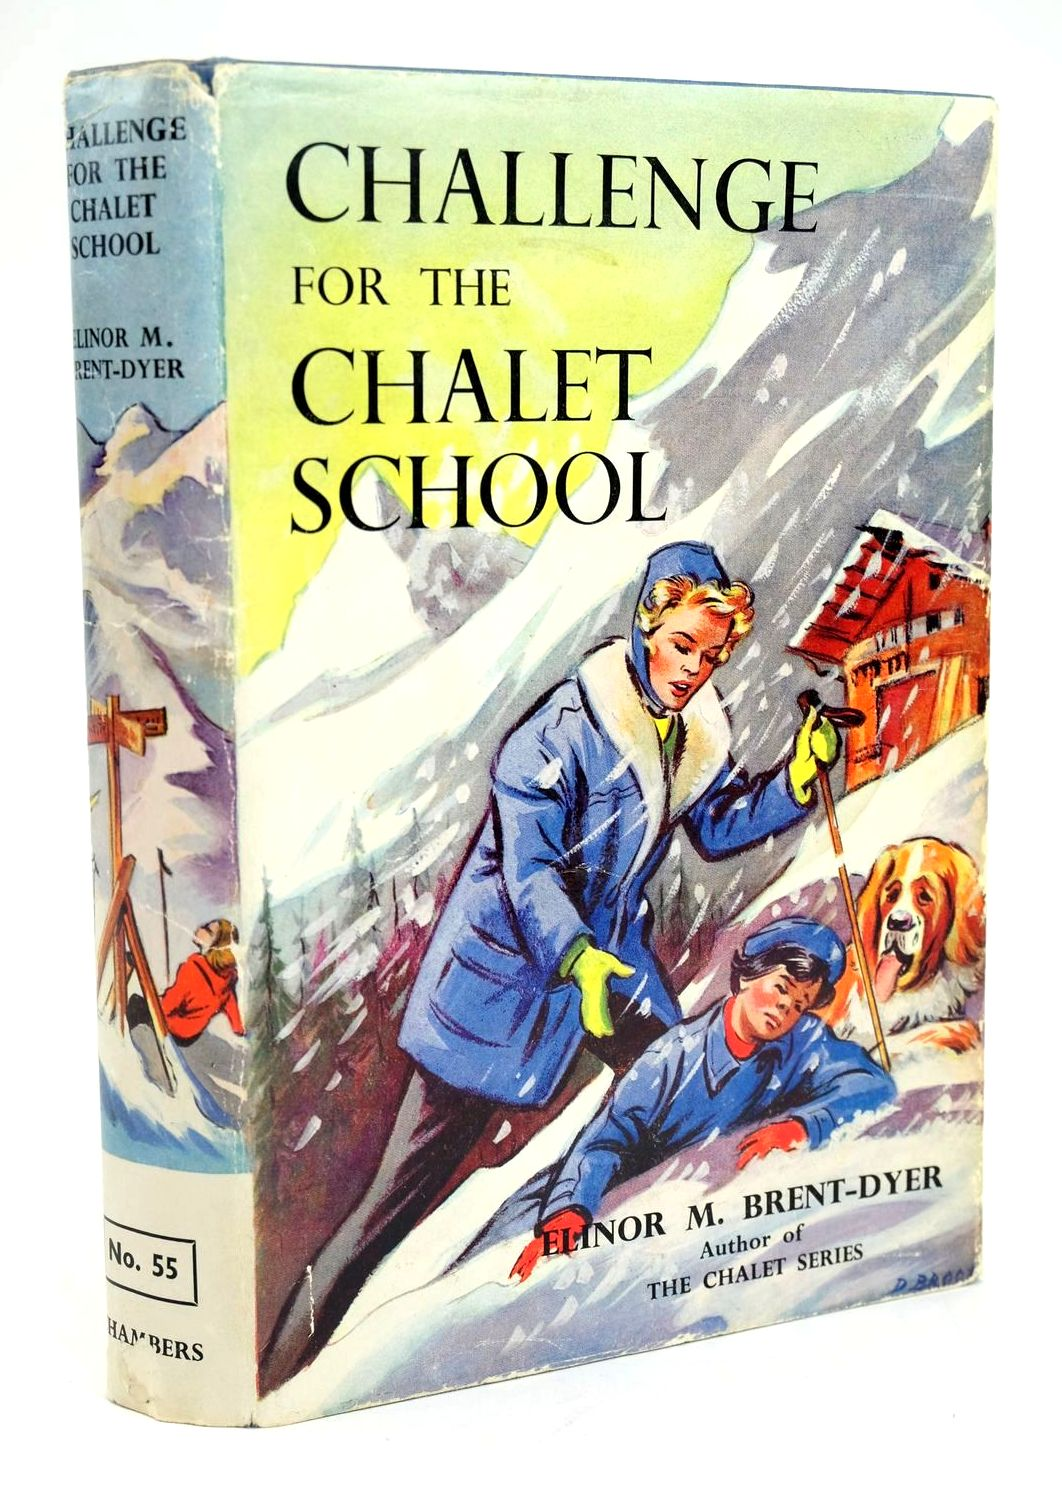 Photo of CHALLENGE FOR THE CHALET SCHOOL written by Brent-Dyer, Elinor M. published by W. & R. Chambers Limited (STOCK CODE: 1319334)  for sale by Stella & Rose's Books